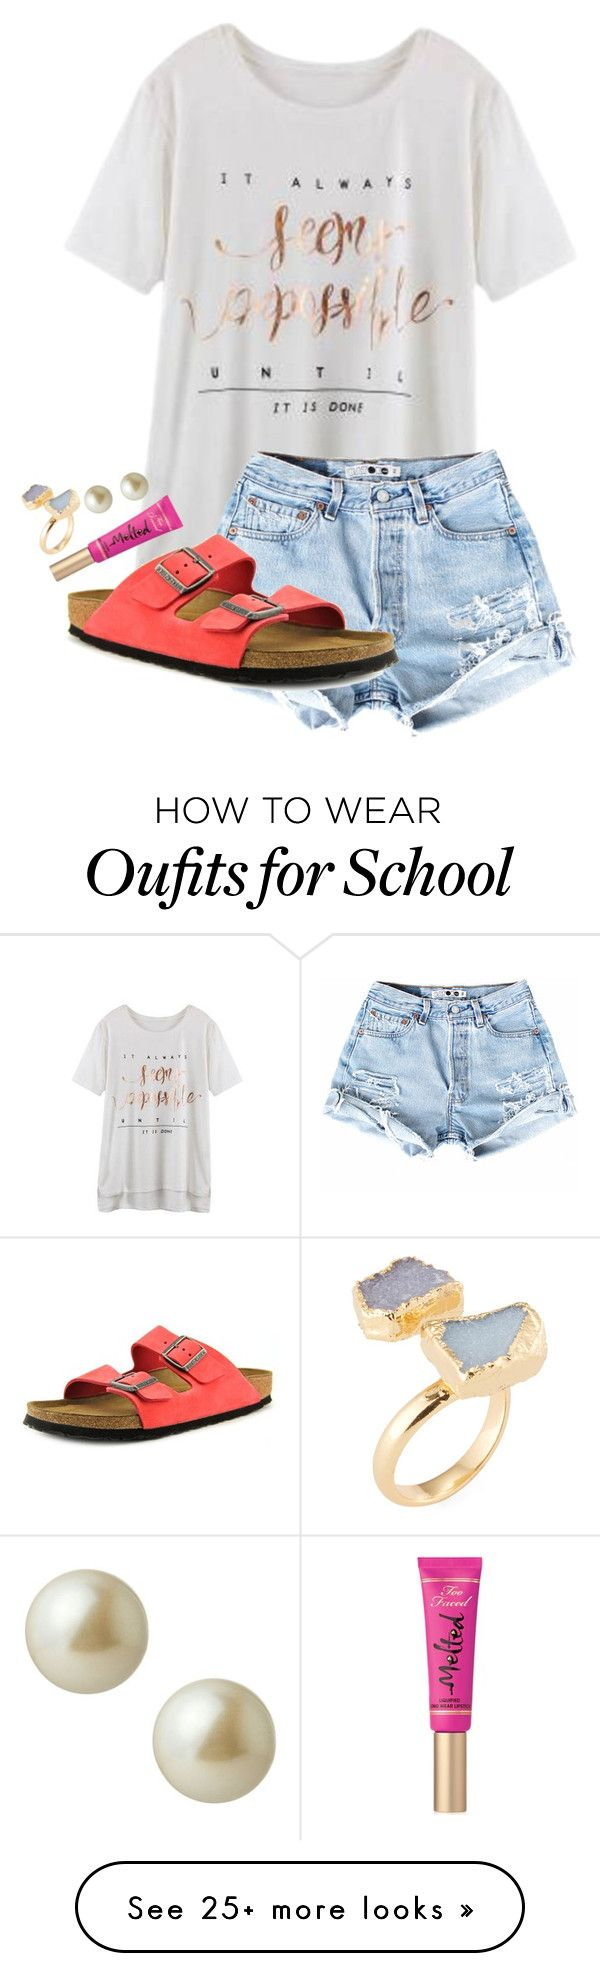 """""""who invented school anyway?!?"""" by ellababy13 on Polyvore featuring Birkenstock, Too Faced Cosmetics, Carolee, Alanna Bess, women's clothing, women, female, woman, misses and juniors"""